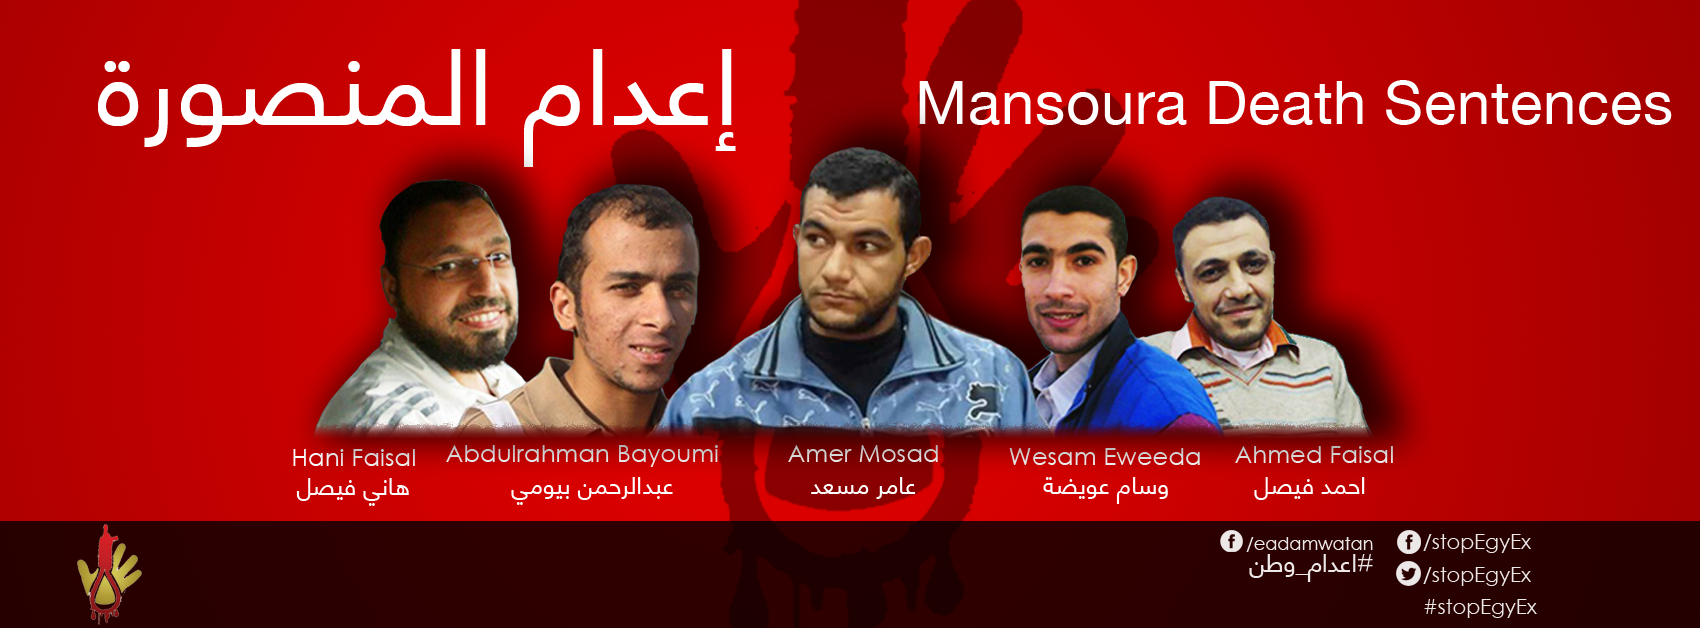 "Mansoura Criminal Court issued death penalties and life imprisonment sentences for 13 charges with forming a ""terrorist cell"" to attack opponents of the Muslim Brotherhood after the ouster of former president Mohamed Morsi in July 2013./ Photo courtesy of the International Coalition for Freedom and Rights."